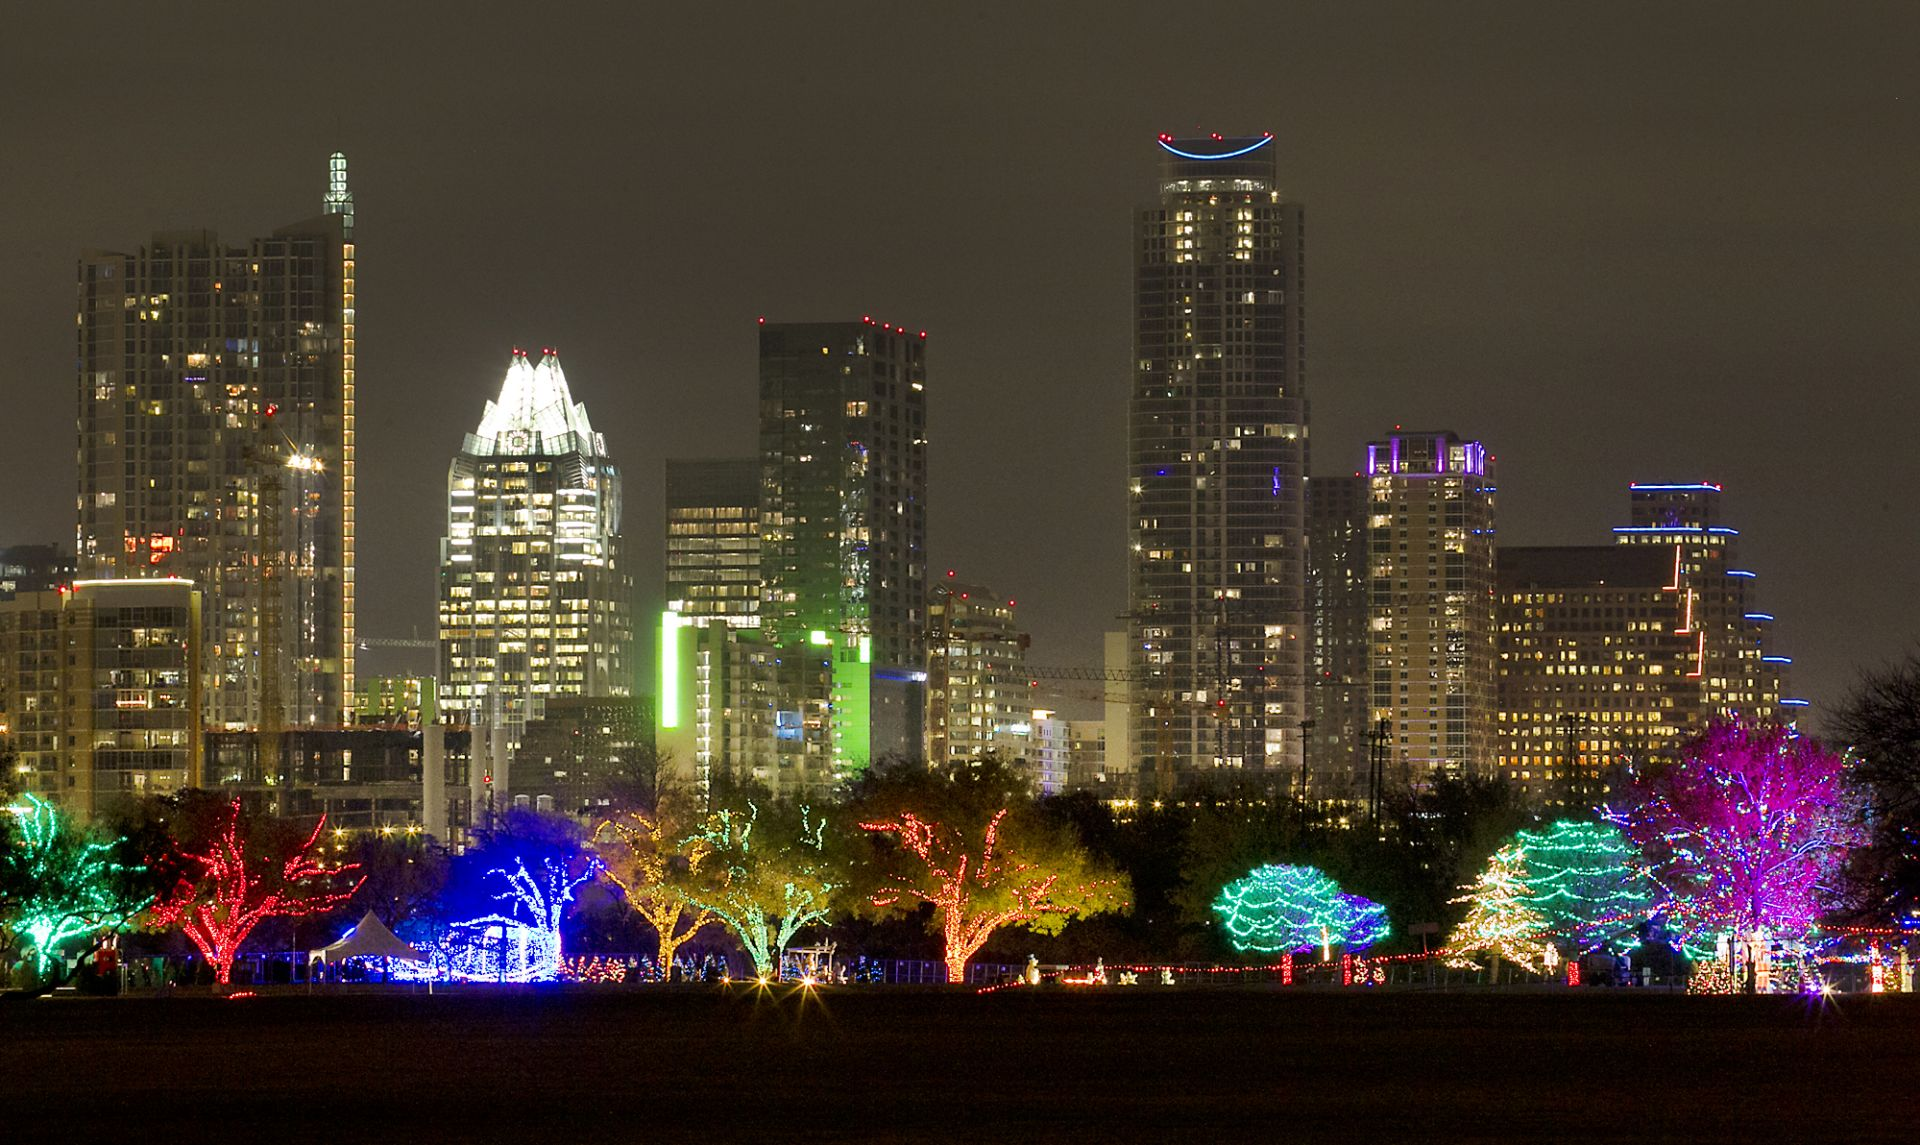 10 Best Places in Austin to Watch Enchanting Holiday Light Displays